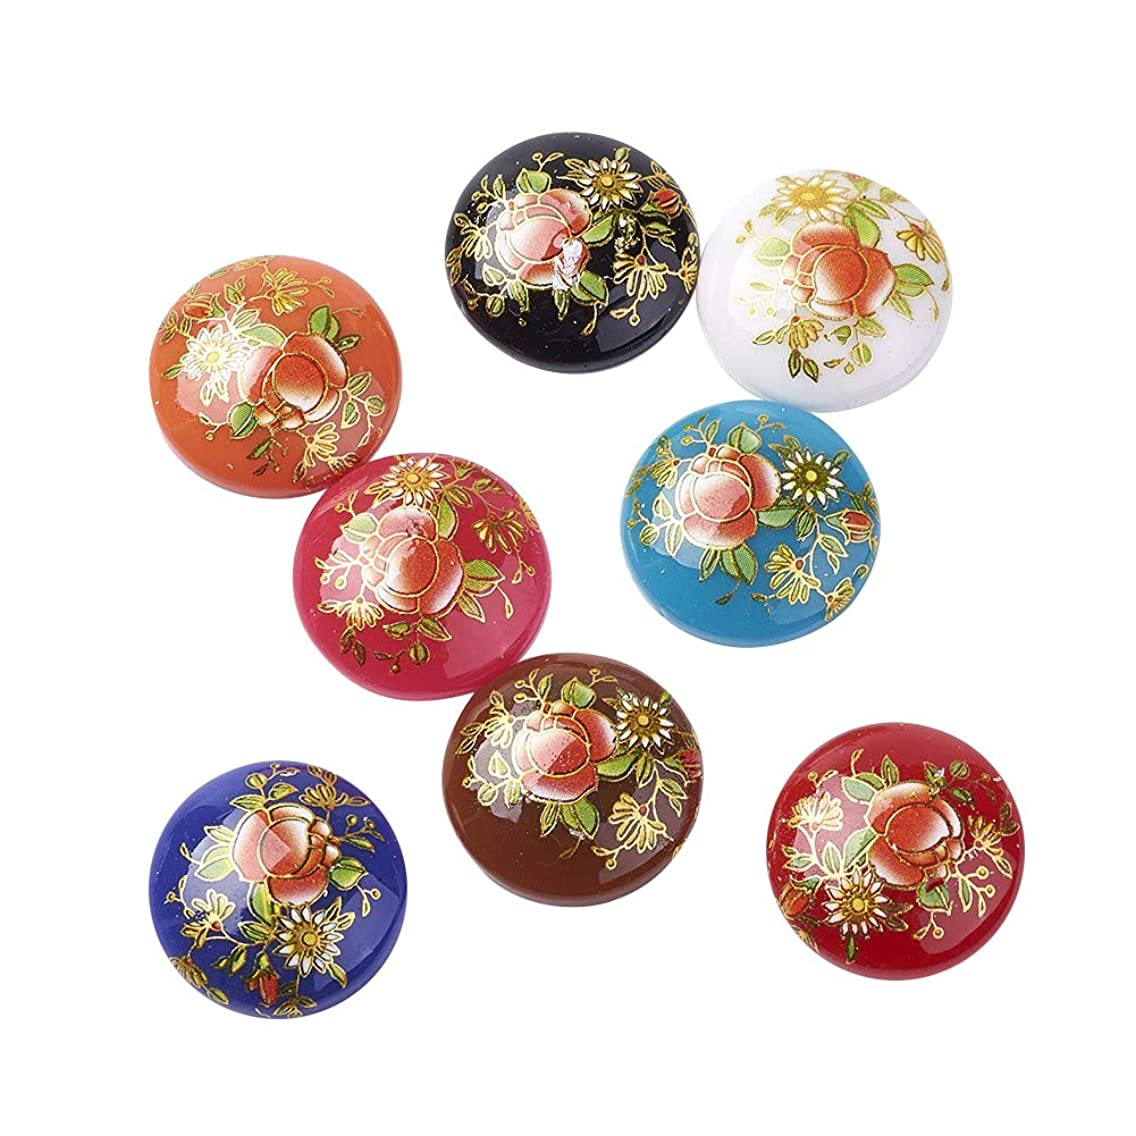 ARRICRAFT 10pcs Half Round/Dome Printed Glass Cabochons Black Color for Jewelry Making Beads Caps